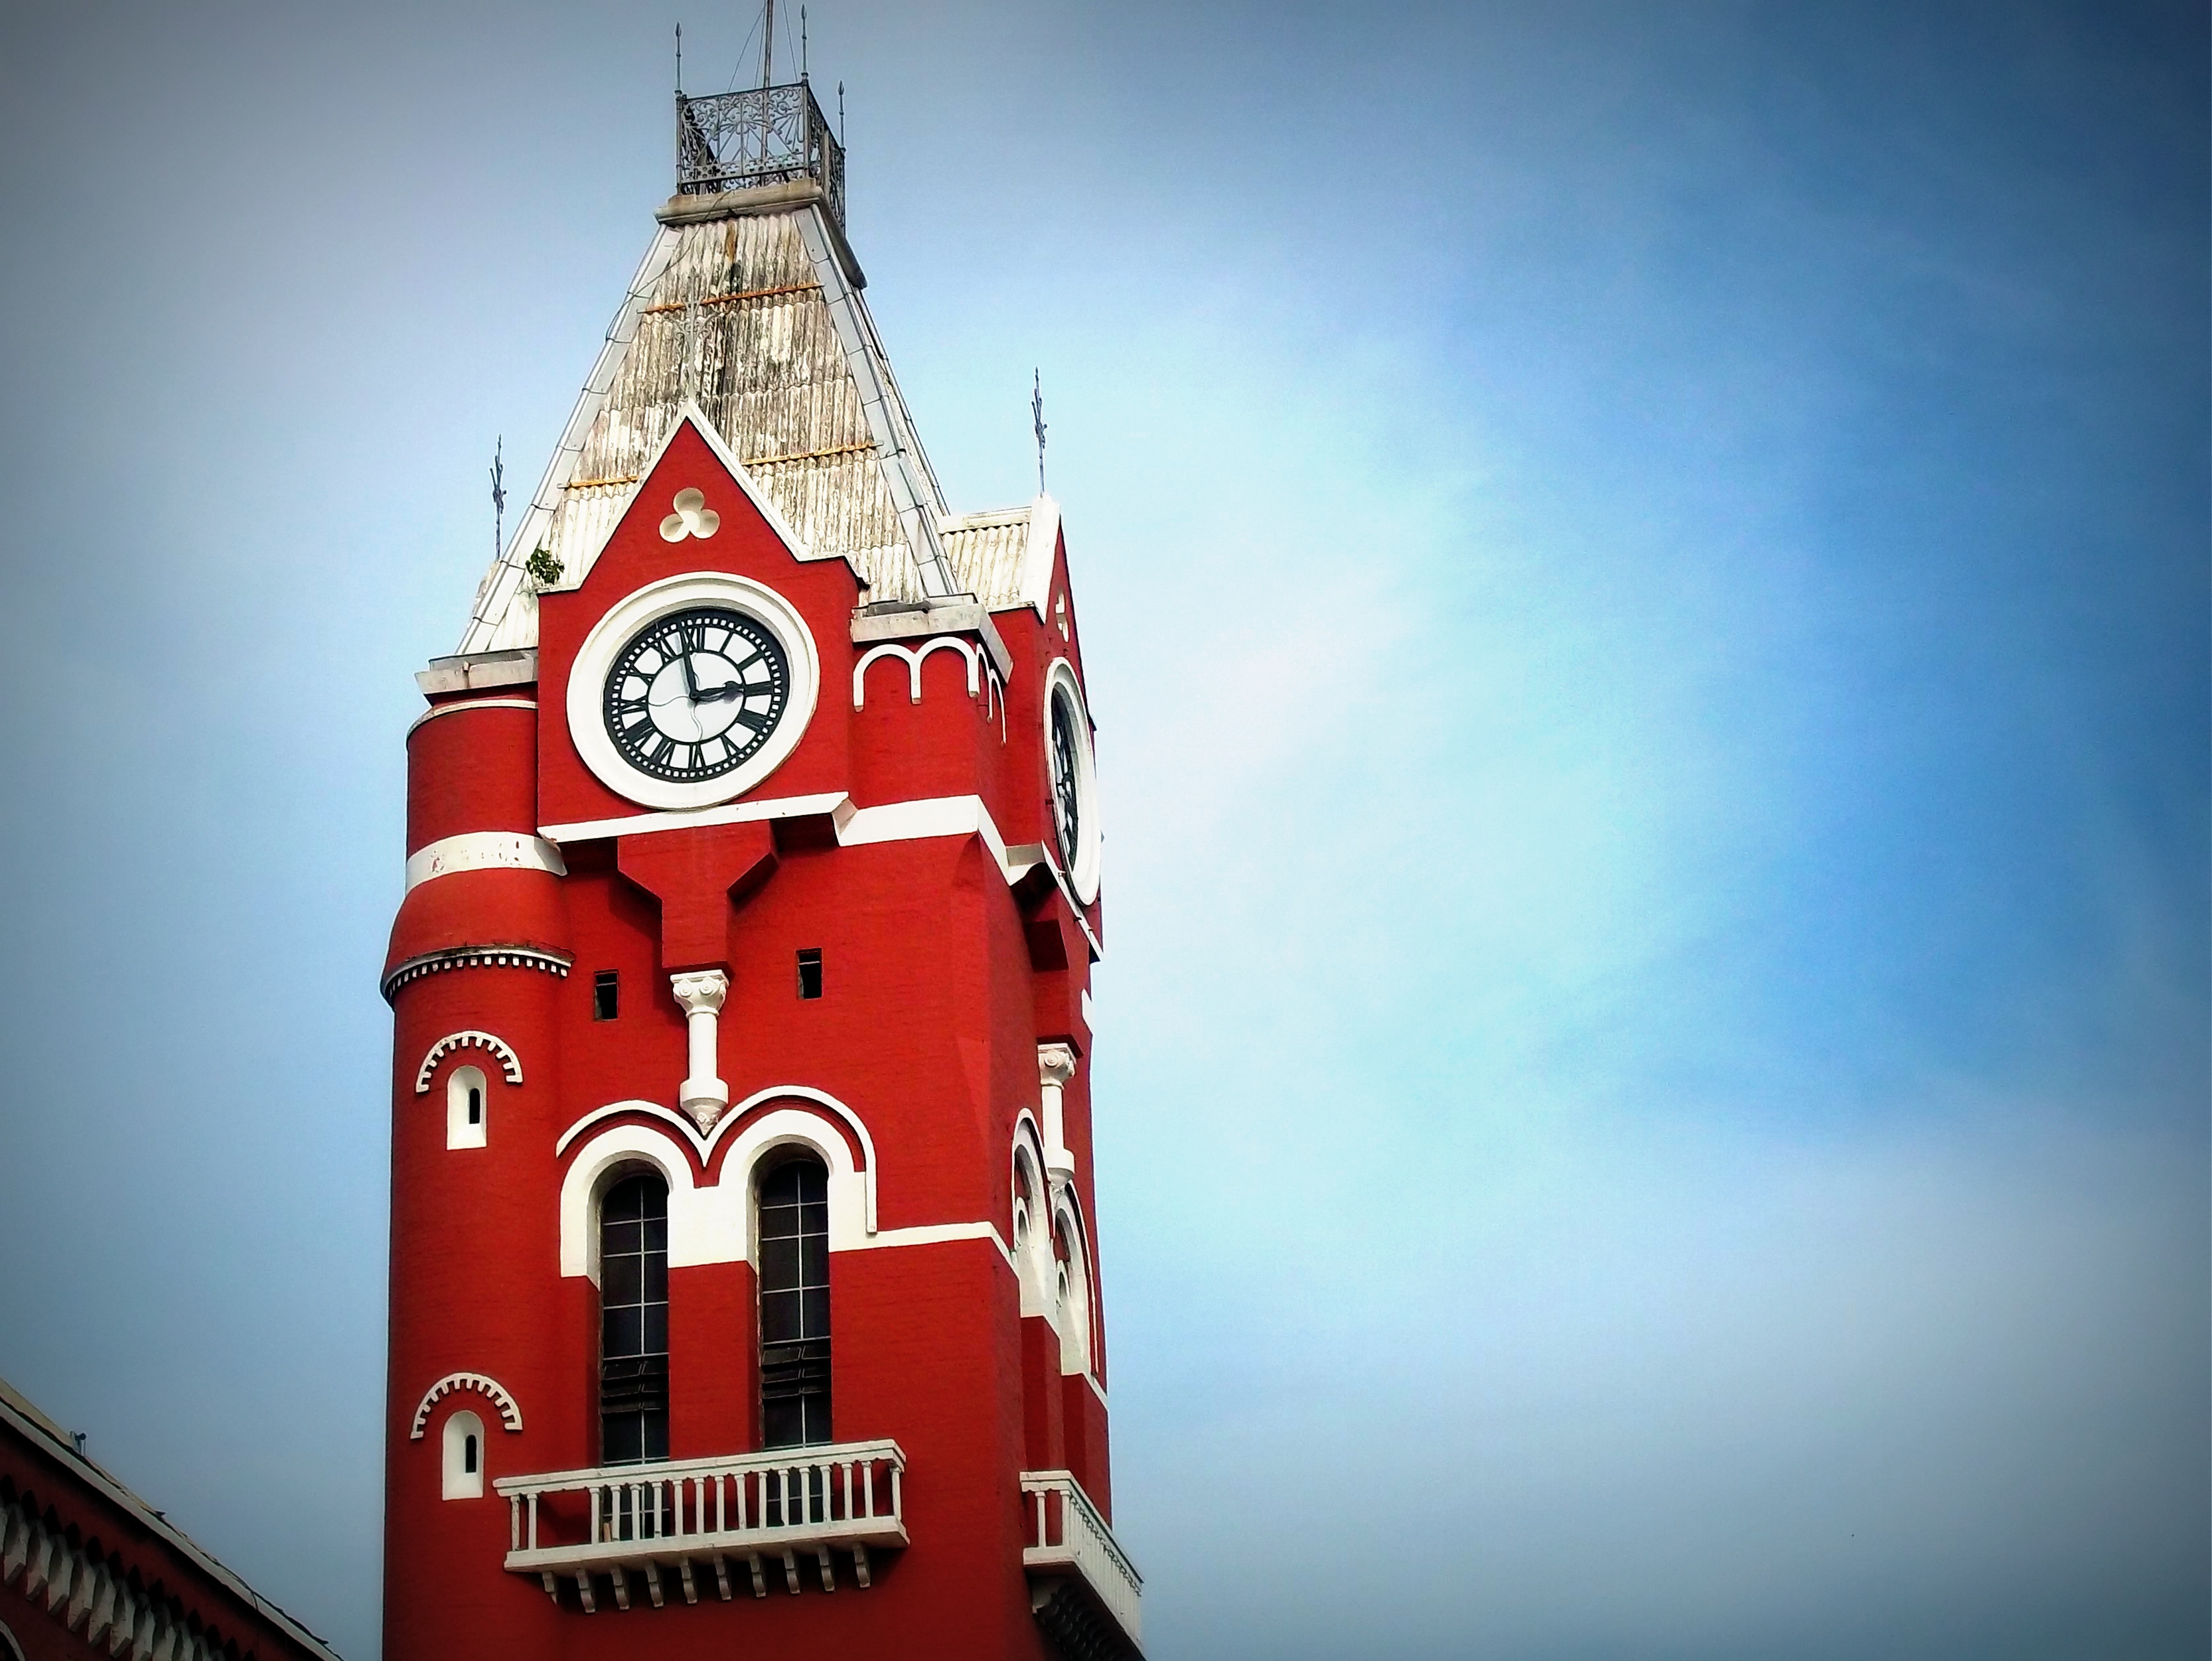 Chennai Central Railway Station Tower Clock